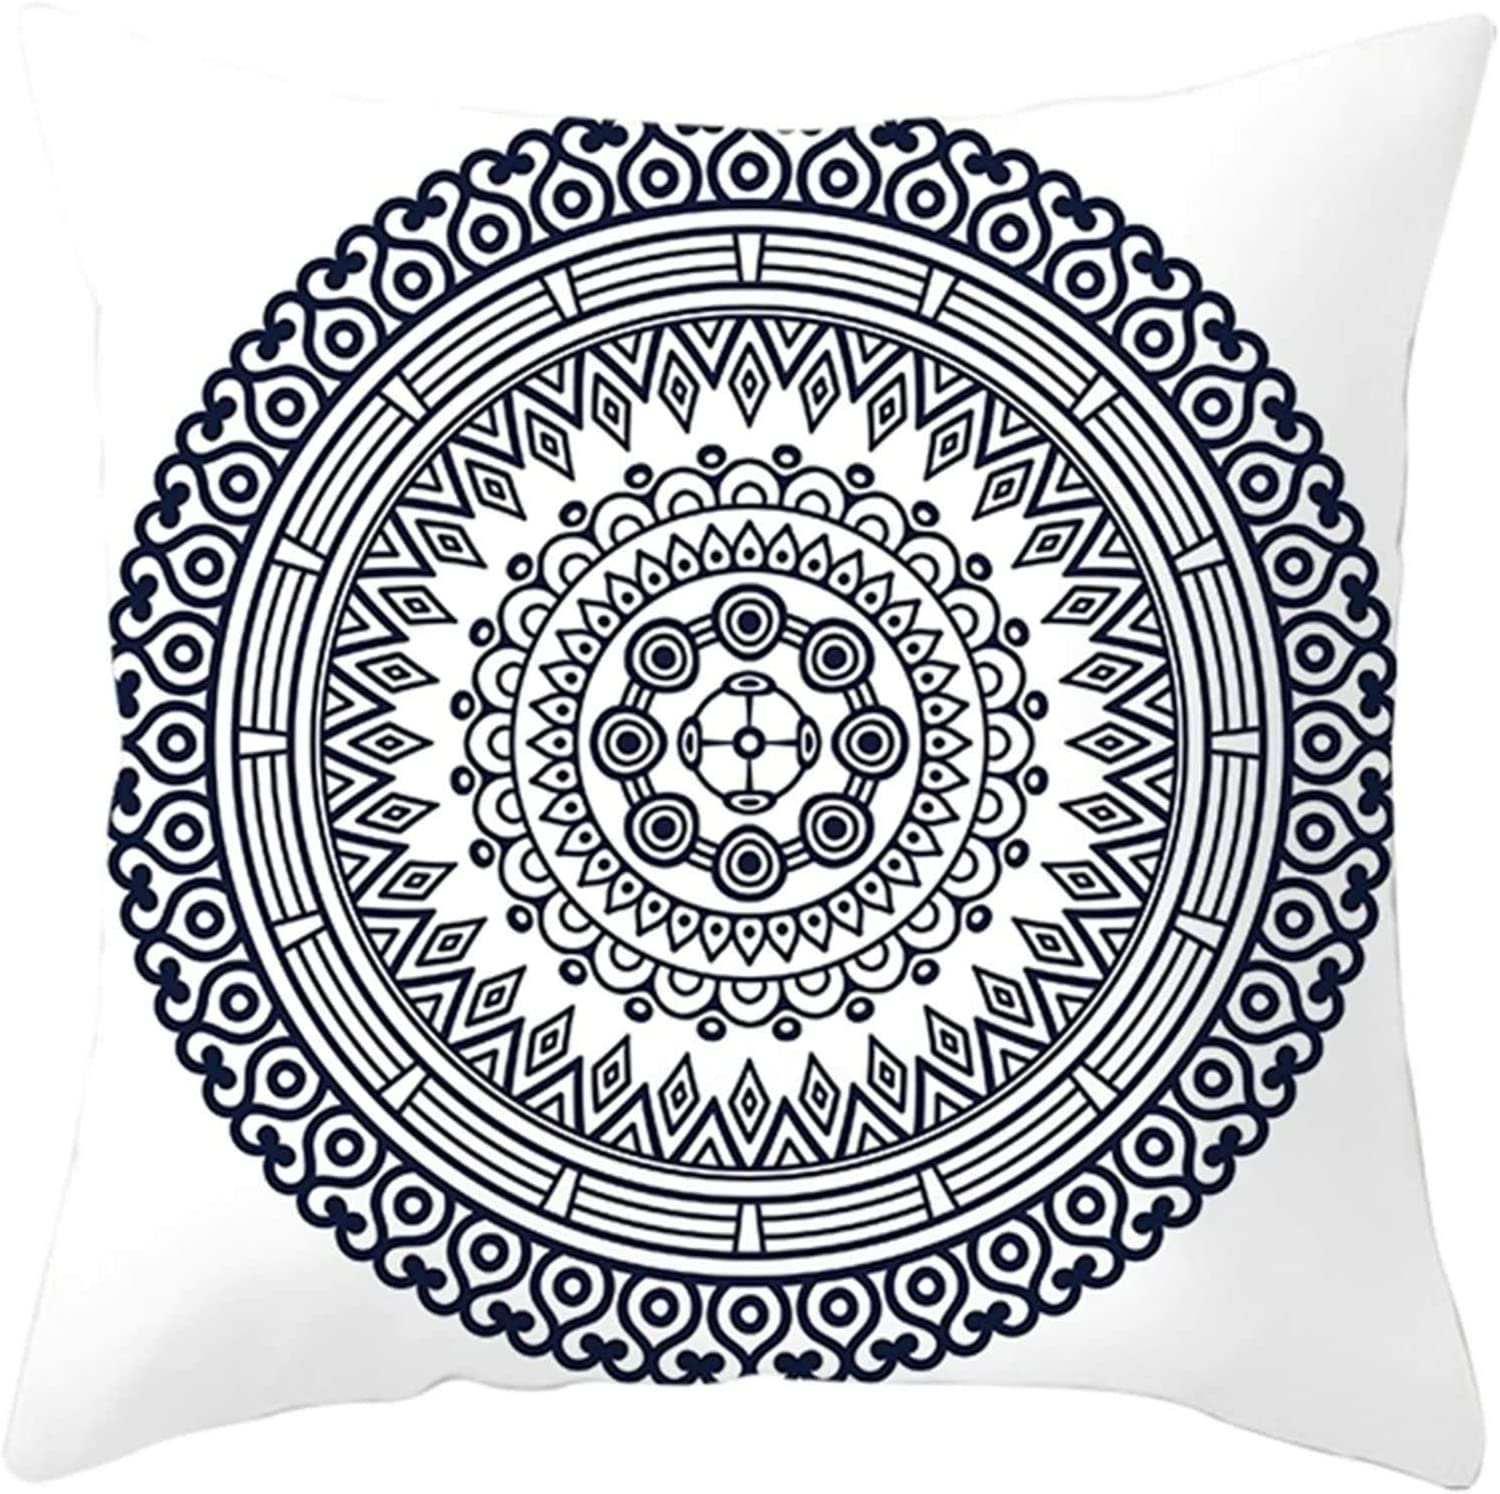 Agoble Same day shipping Replacement Cushion Covers Cover Polyest Natural 25% OFF